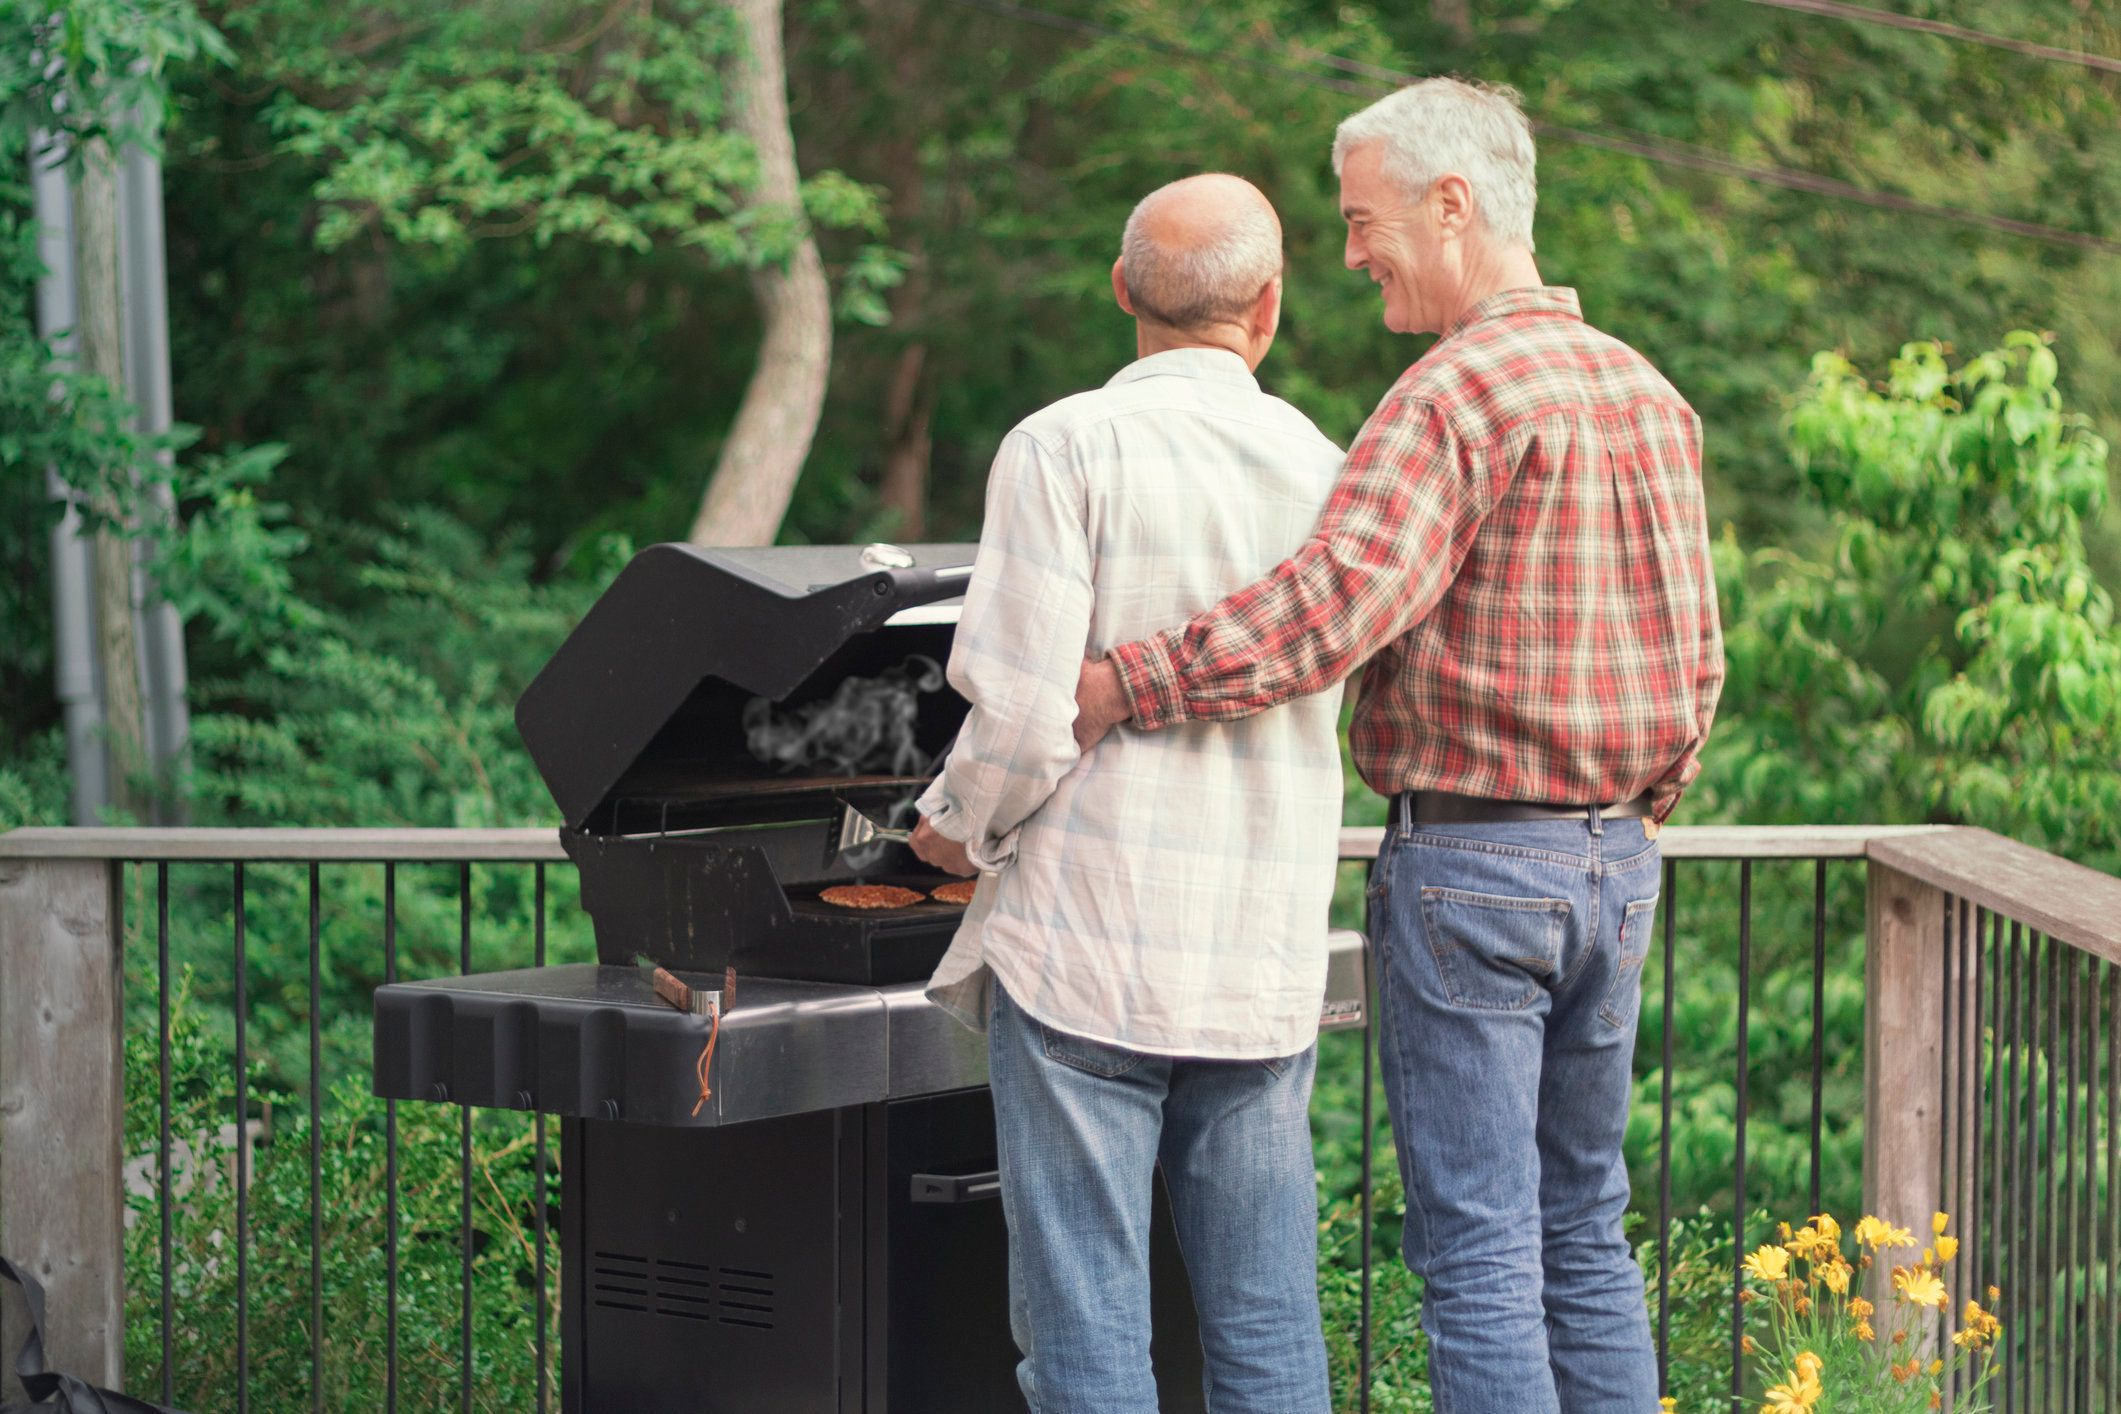 Senior mature older gay male couple grilling food together on outdoor grill, while one has his arm around the other and they look affectionately at each other